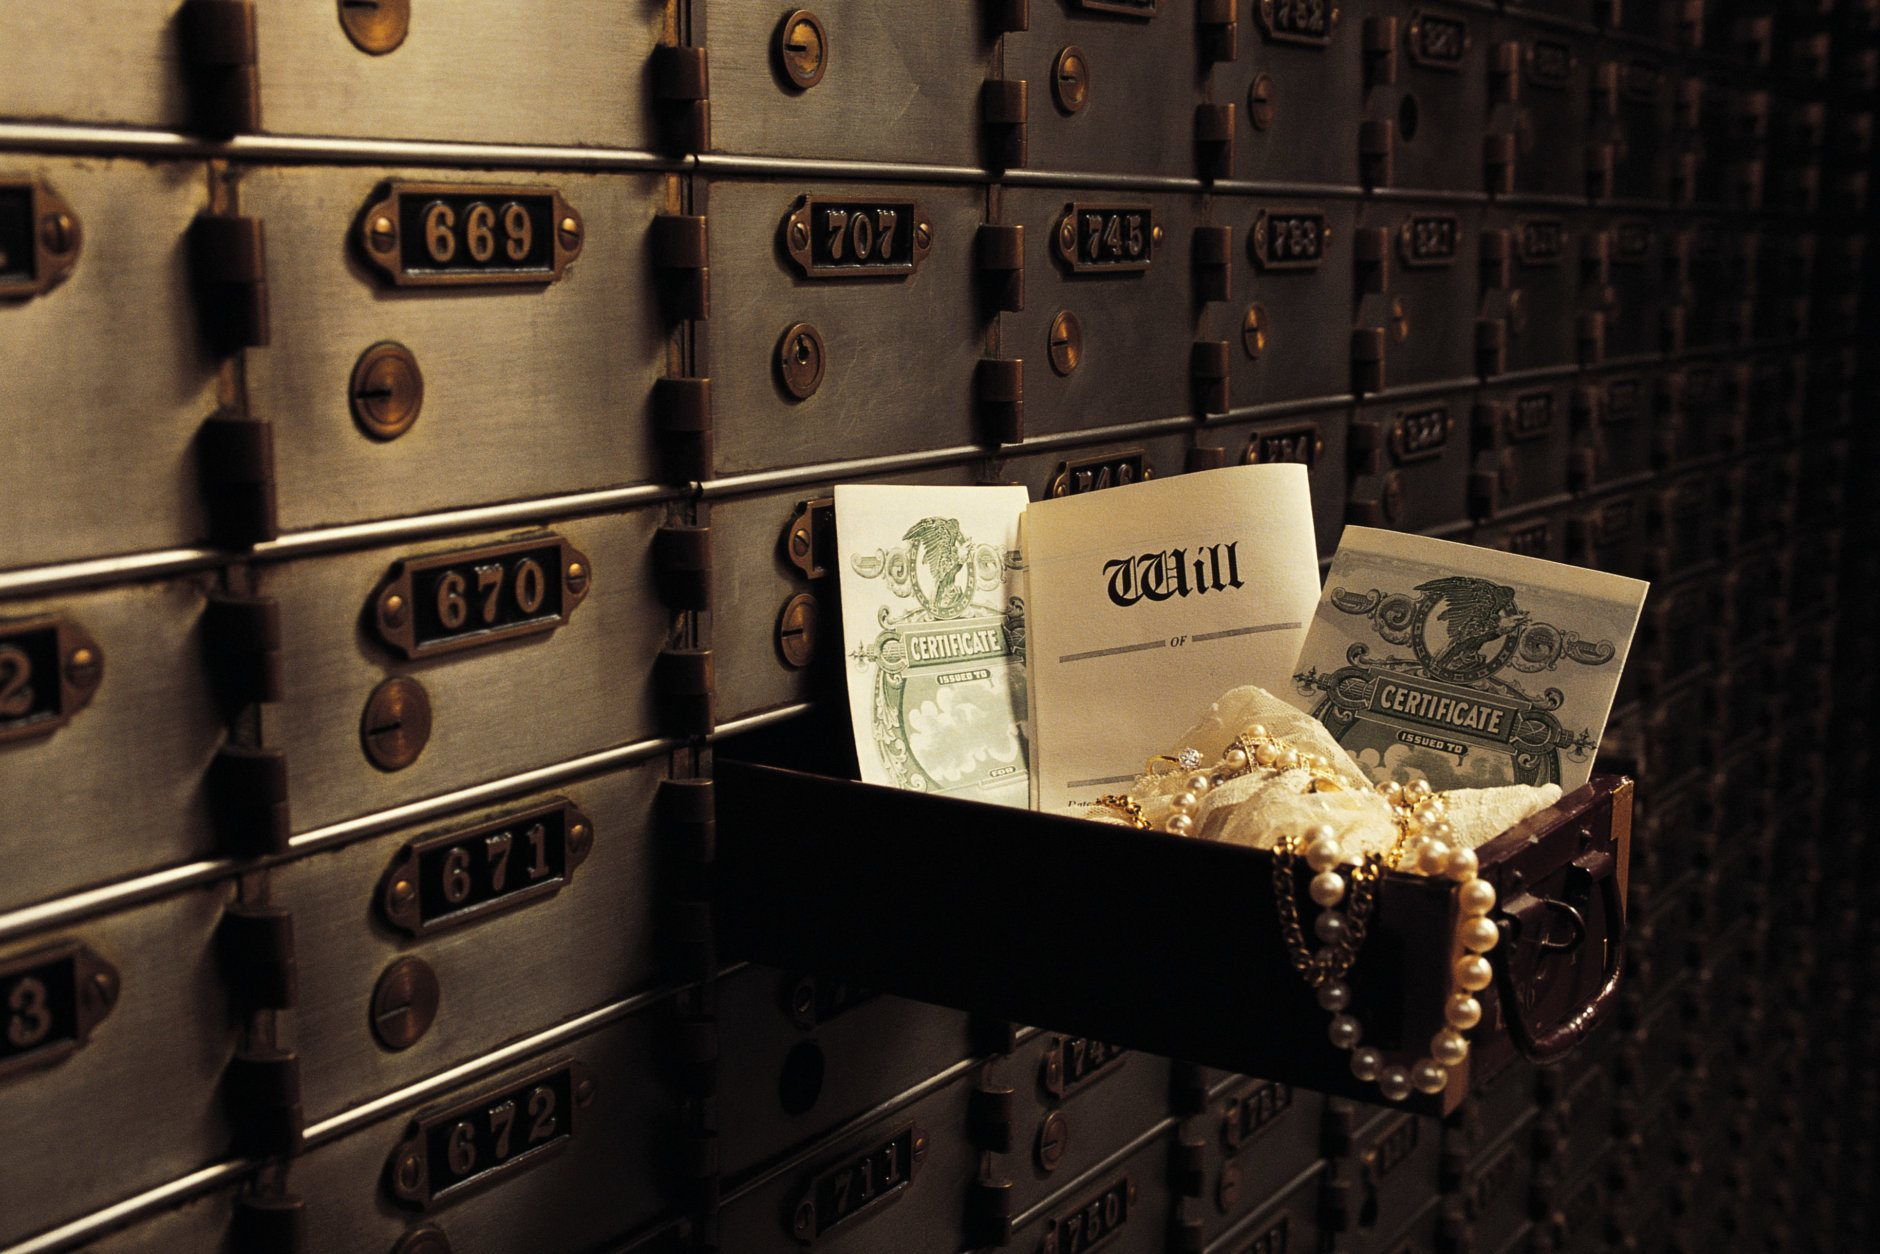 A safe deposit box is a small, secure container that's housed at a bank. The boxes can range in size from 2 inches by 5 inches to 10 inches by 15 inches or even larger. Costumers typically rent, and prices vary according to the bank and box size. (Getty Images/Comstock)